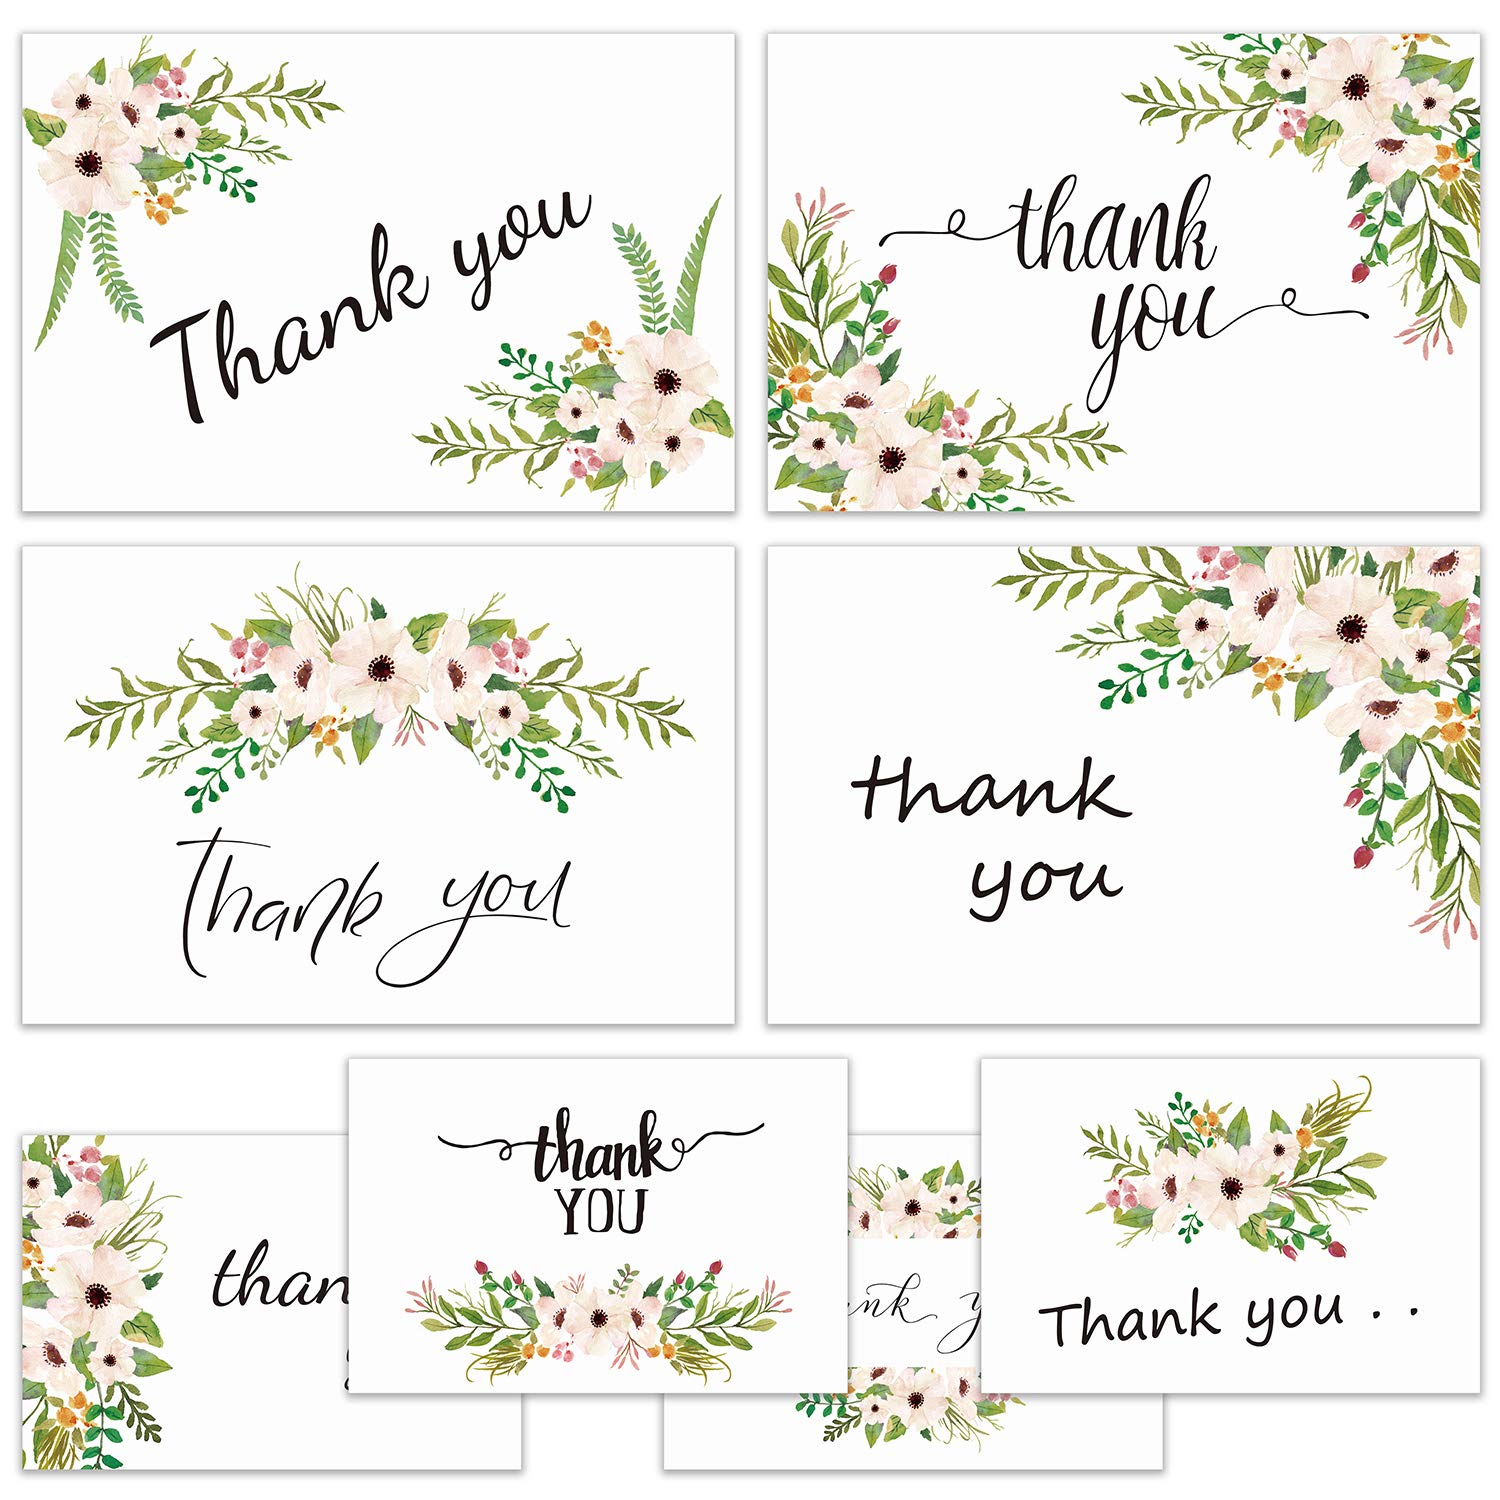 Thank You Cards with Envelopes - Set of 80 Watercolor Floral Flower Thank You Notes and Flower Stickers - Blank Inside, Perfect for Wedding, Graduation Mother's Day - 4 x 6 Inches